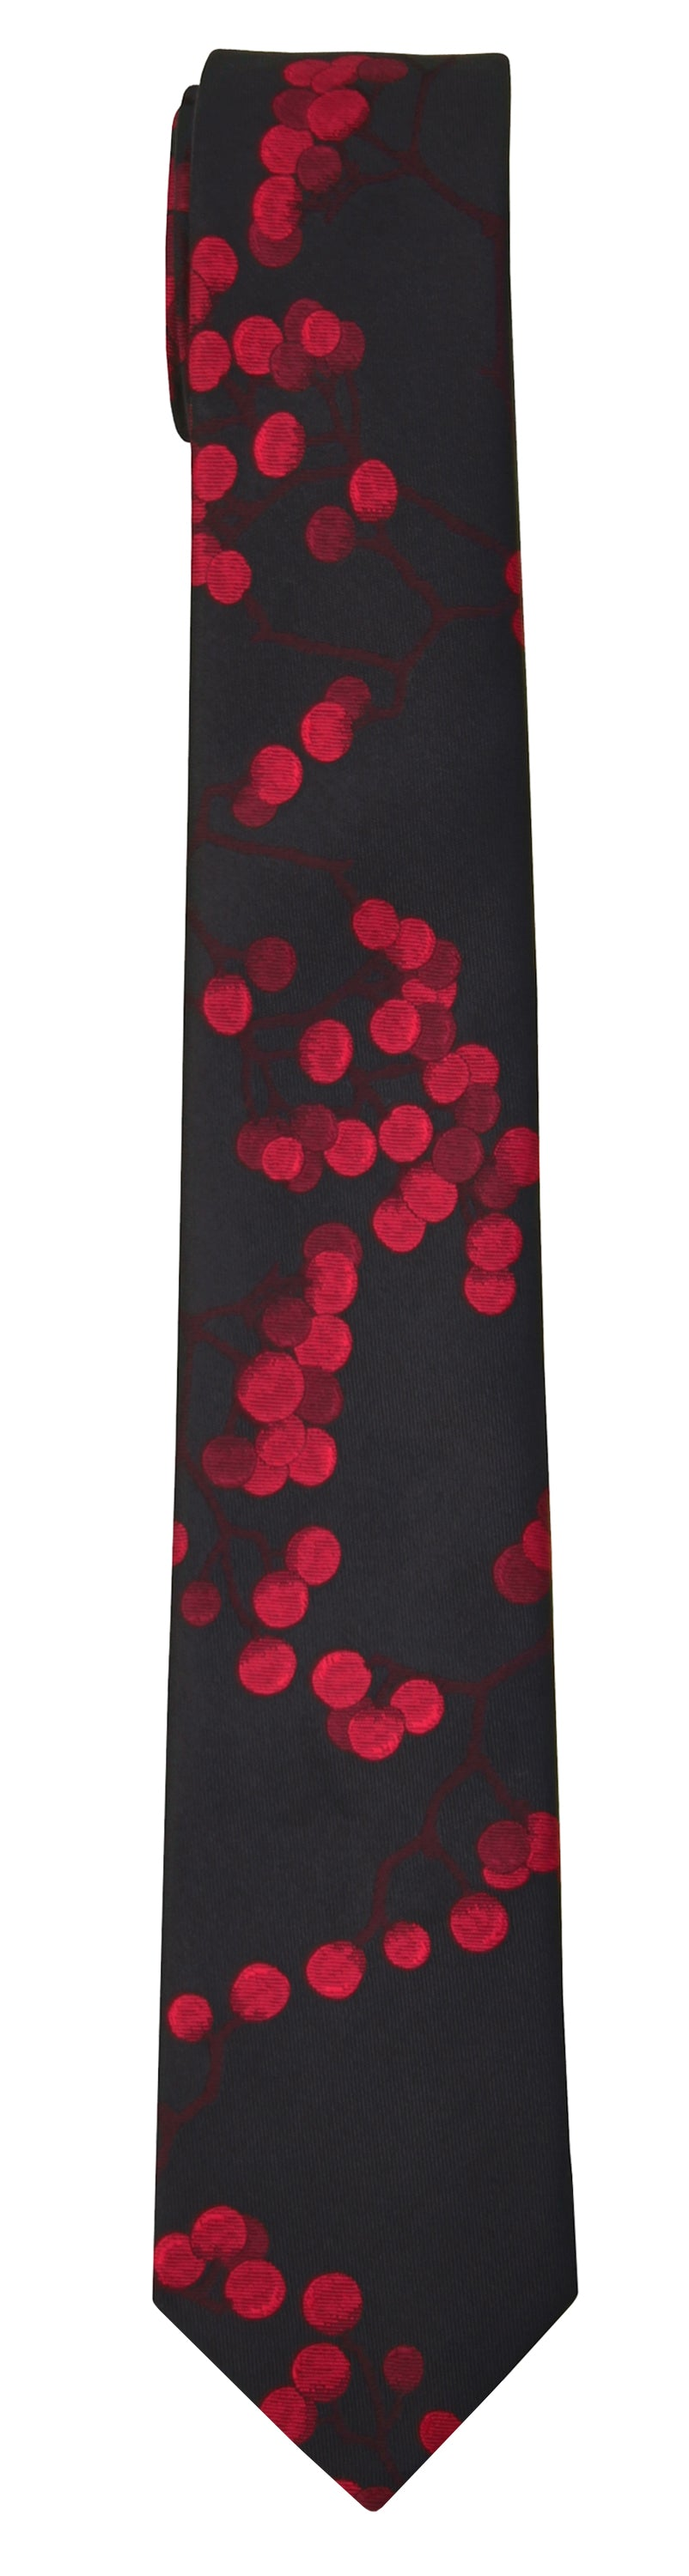 Mimi Fong Berries Tie in Black & Red